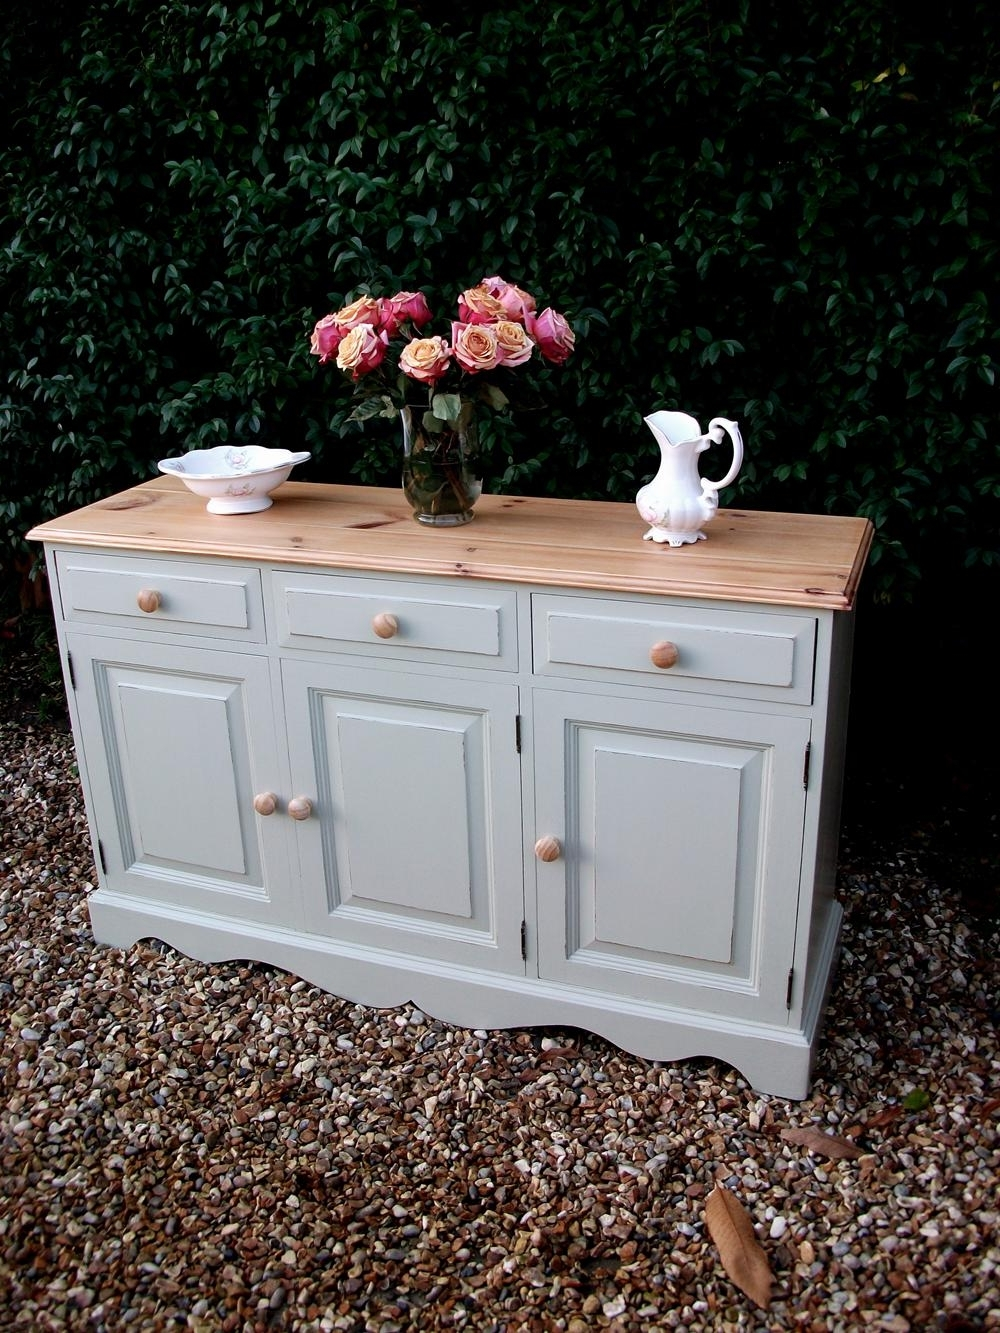 Shabby Chic Pine Wardrobes For Preferred Blues And Hues – Bespoke Furniture Painting Surrey (View 12 of 15)